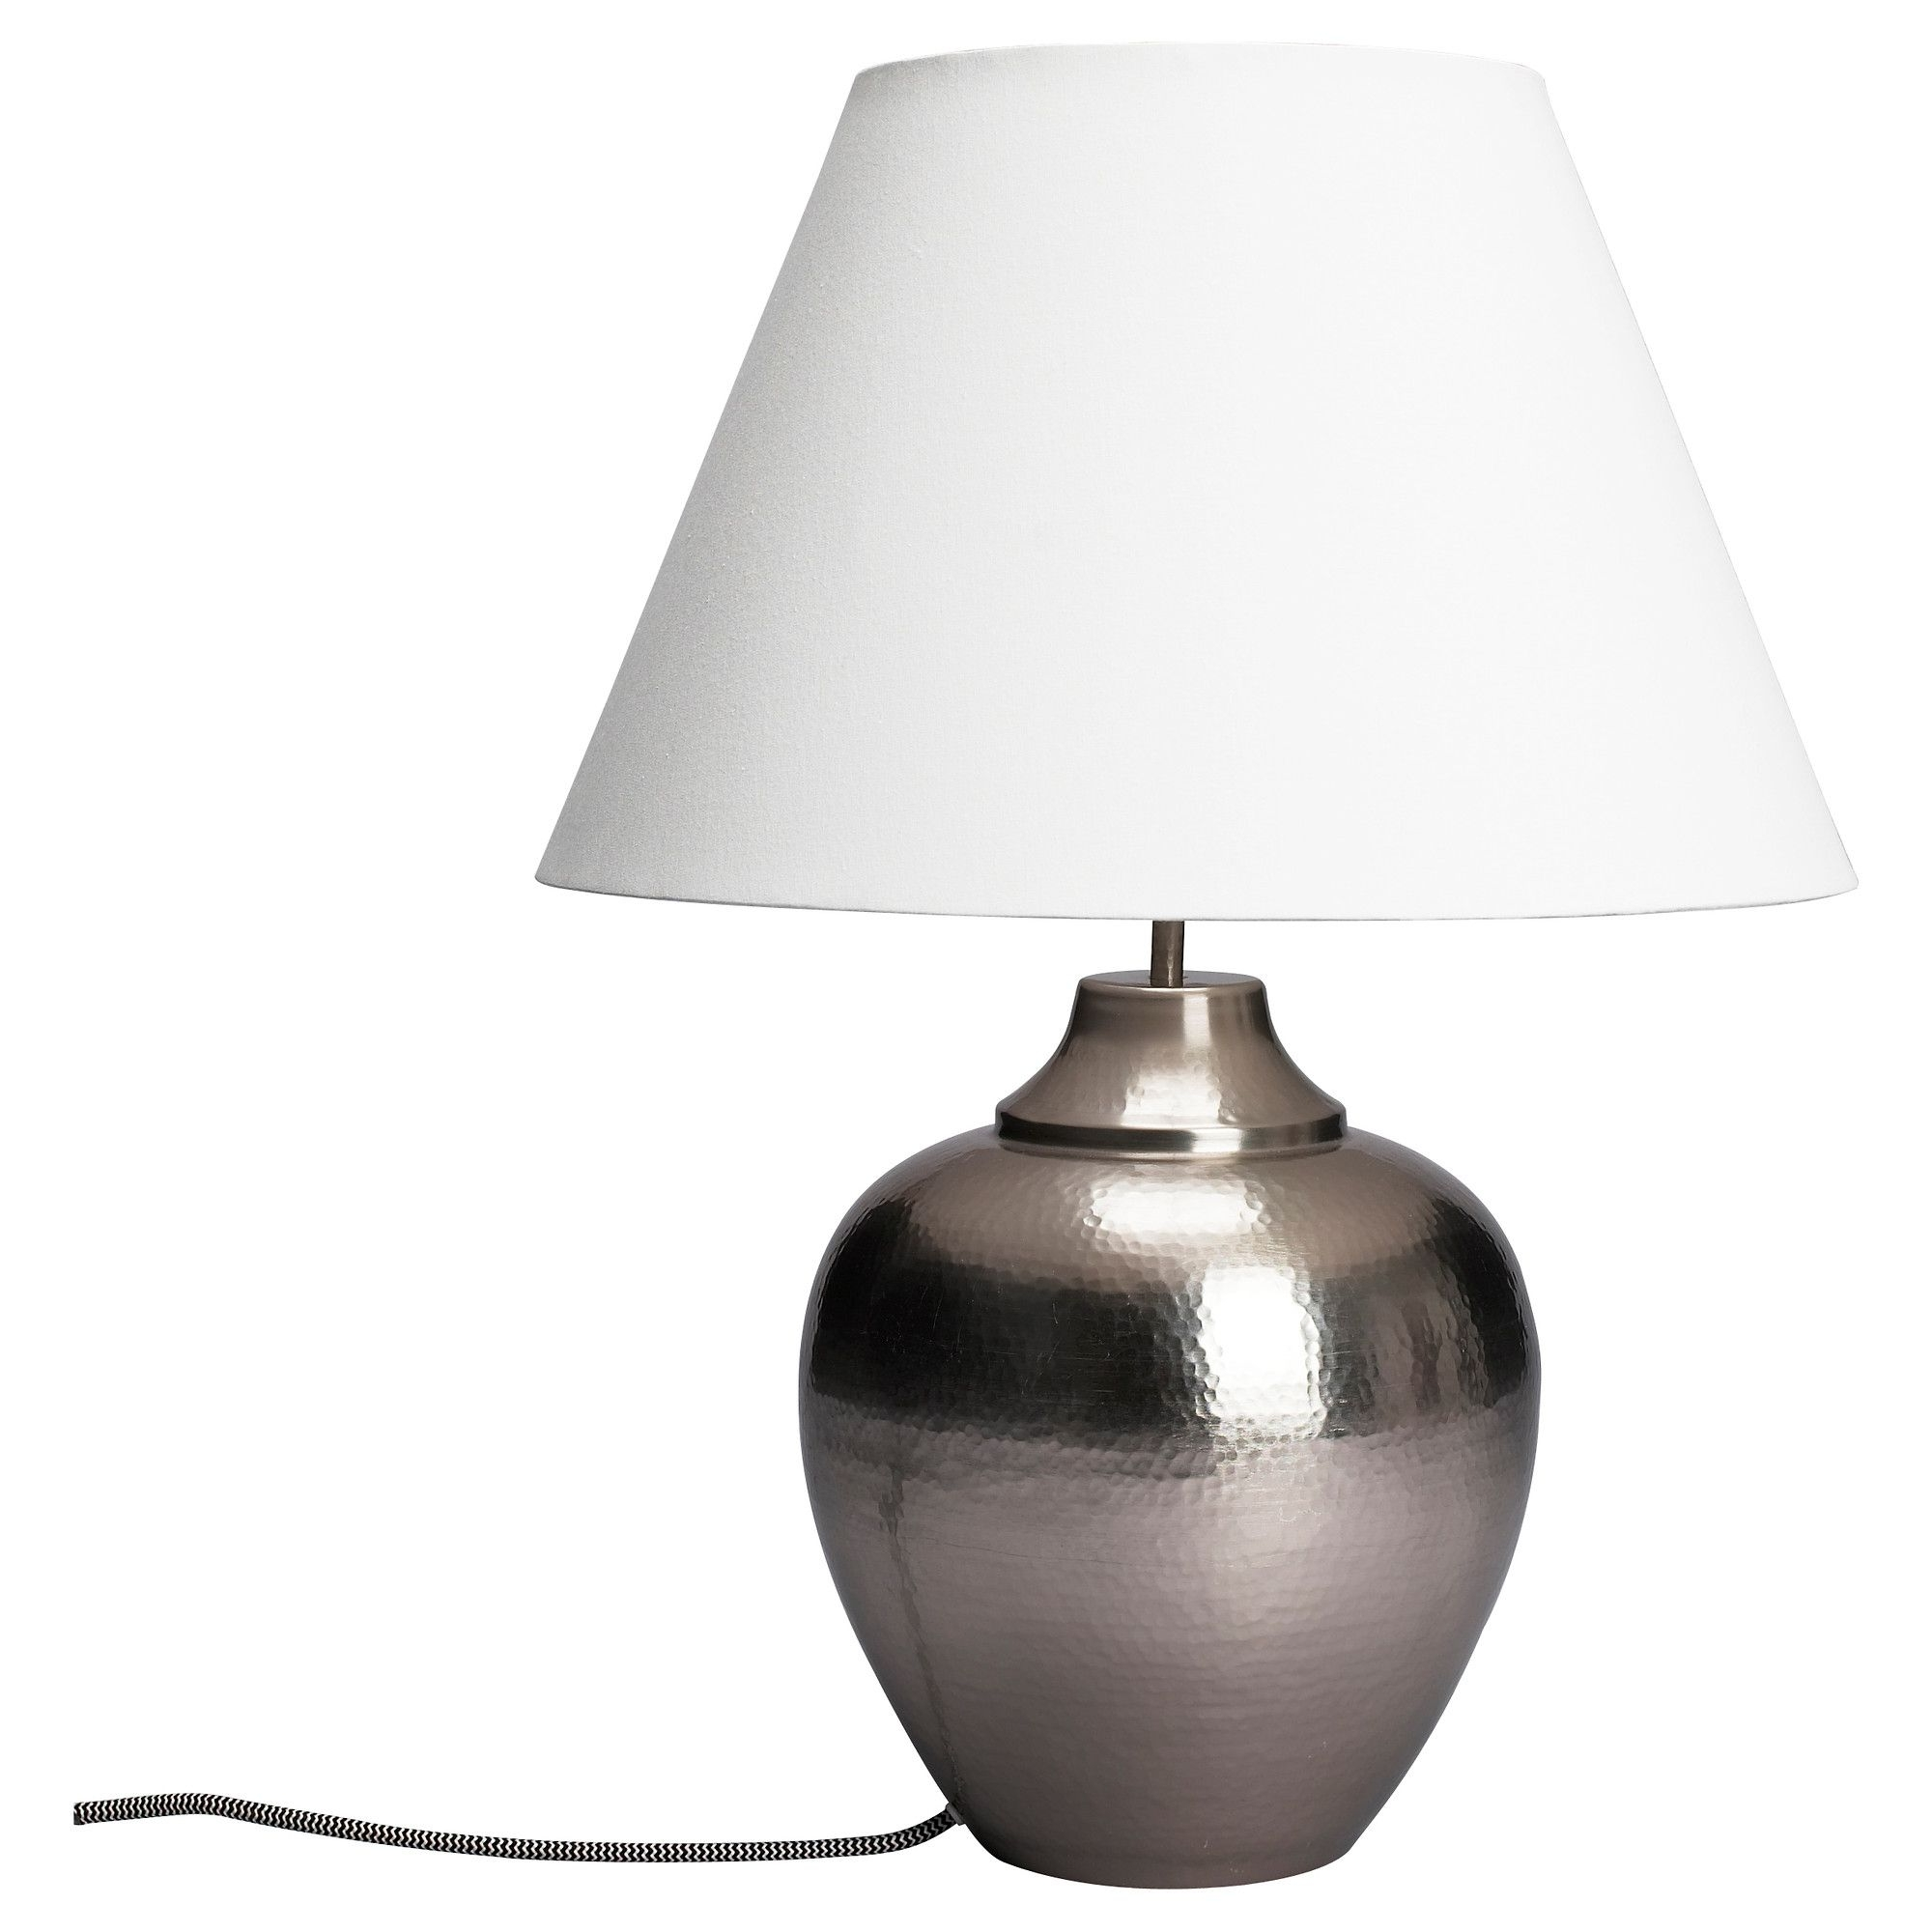 View Gallery of Living Room Table Lamps At Ikea (Showing 7 of 7